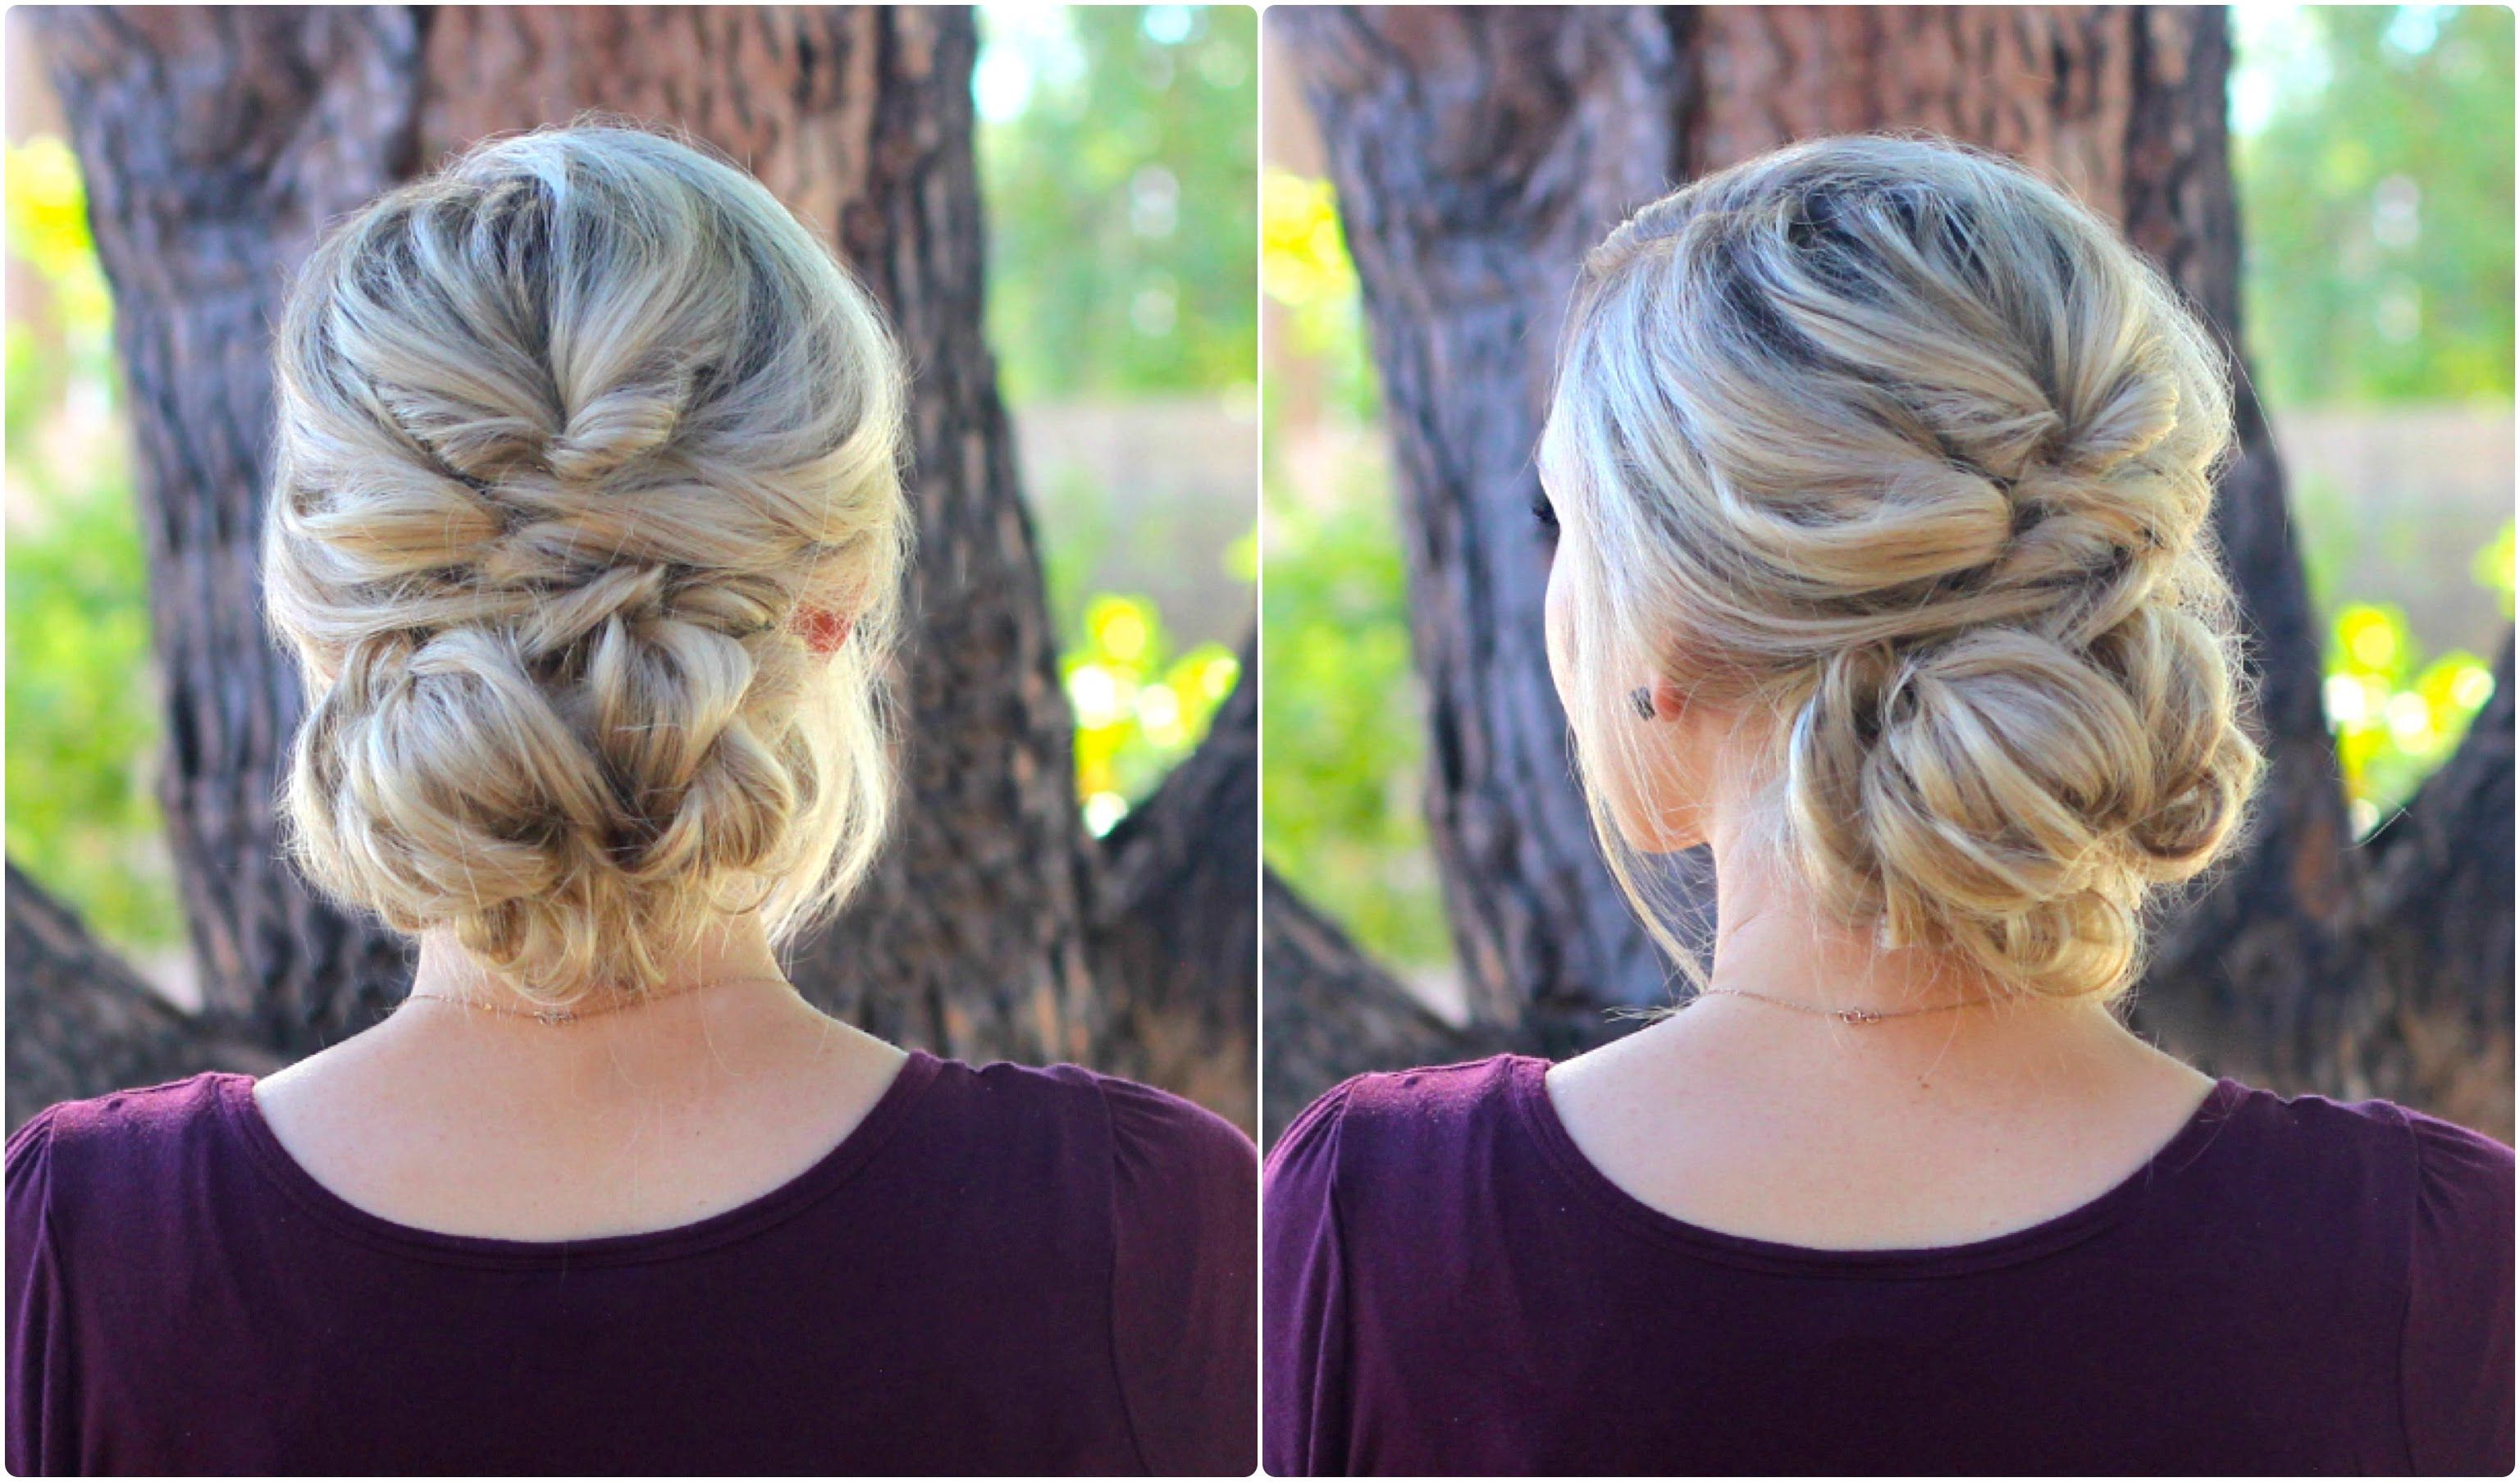 Topsy Tail Bun Updo Cute Girls Hairstyles Cute Girls - Hairstyle bun videos